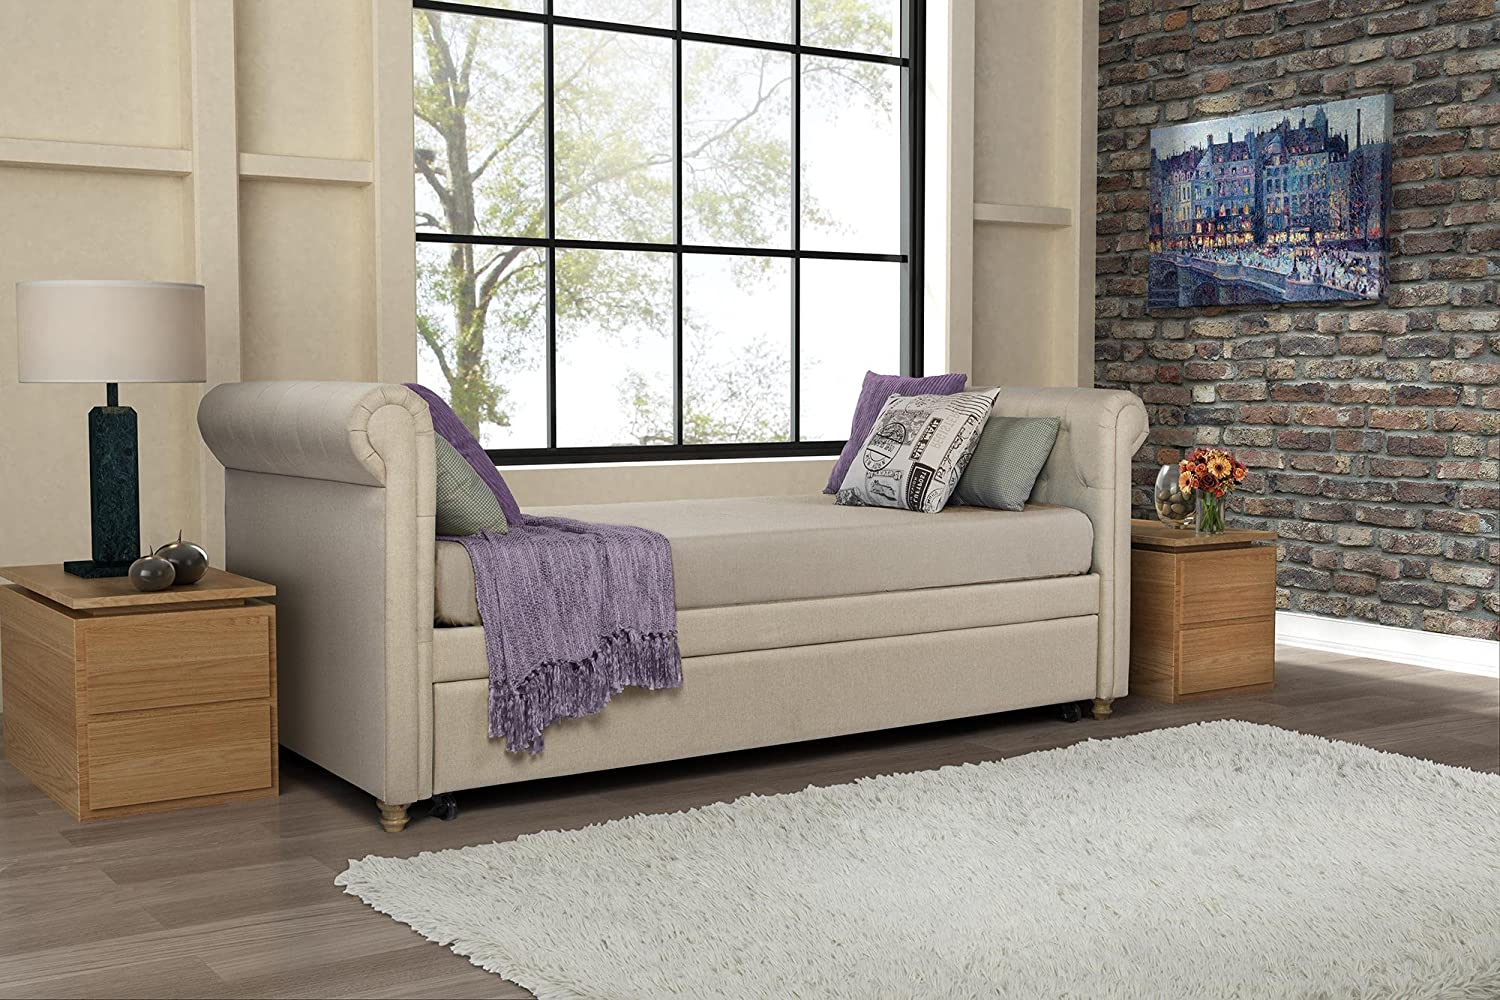 Amazon com  DHP Sophia Upholstered Daybed and Trundle  Classic Design  Twin  Size  Tan  Kitchen   Dining. Amazon com  DHP Sophia Upholstered Daybed and Trundle  Classic